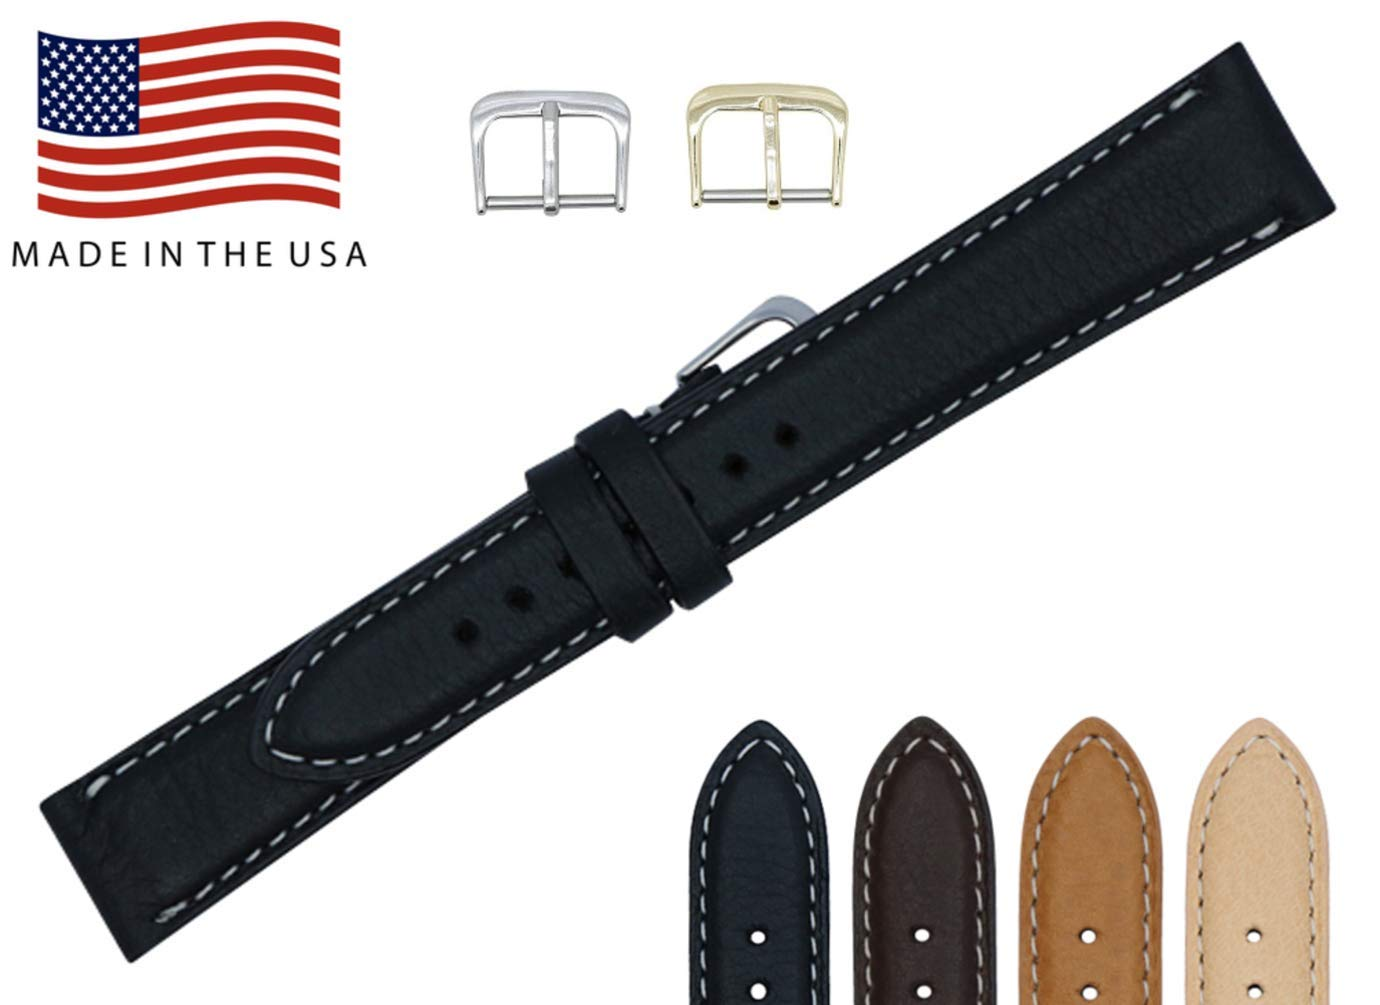 22mm Black Soft Genuine Leather Watch Strap Band – American Factory Direct - Gold & Silver Buckles Included – Contrast Stitch - Made in USA by Real Leather Creations PAD CS FBA106